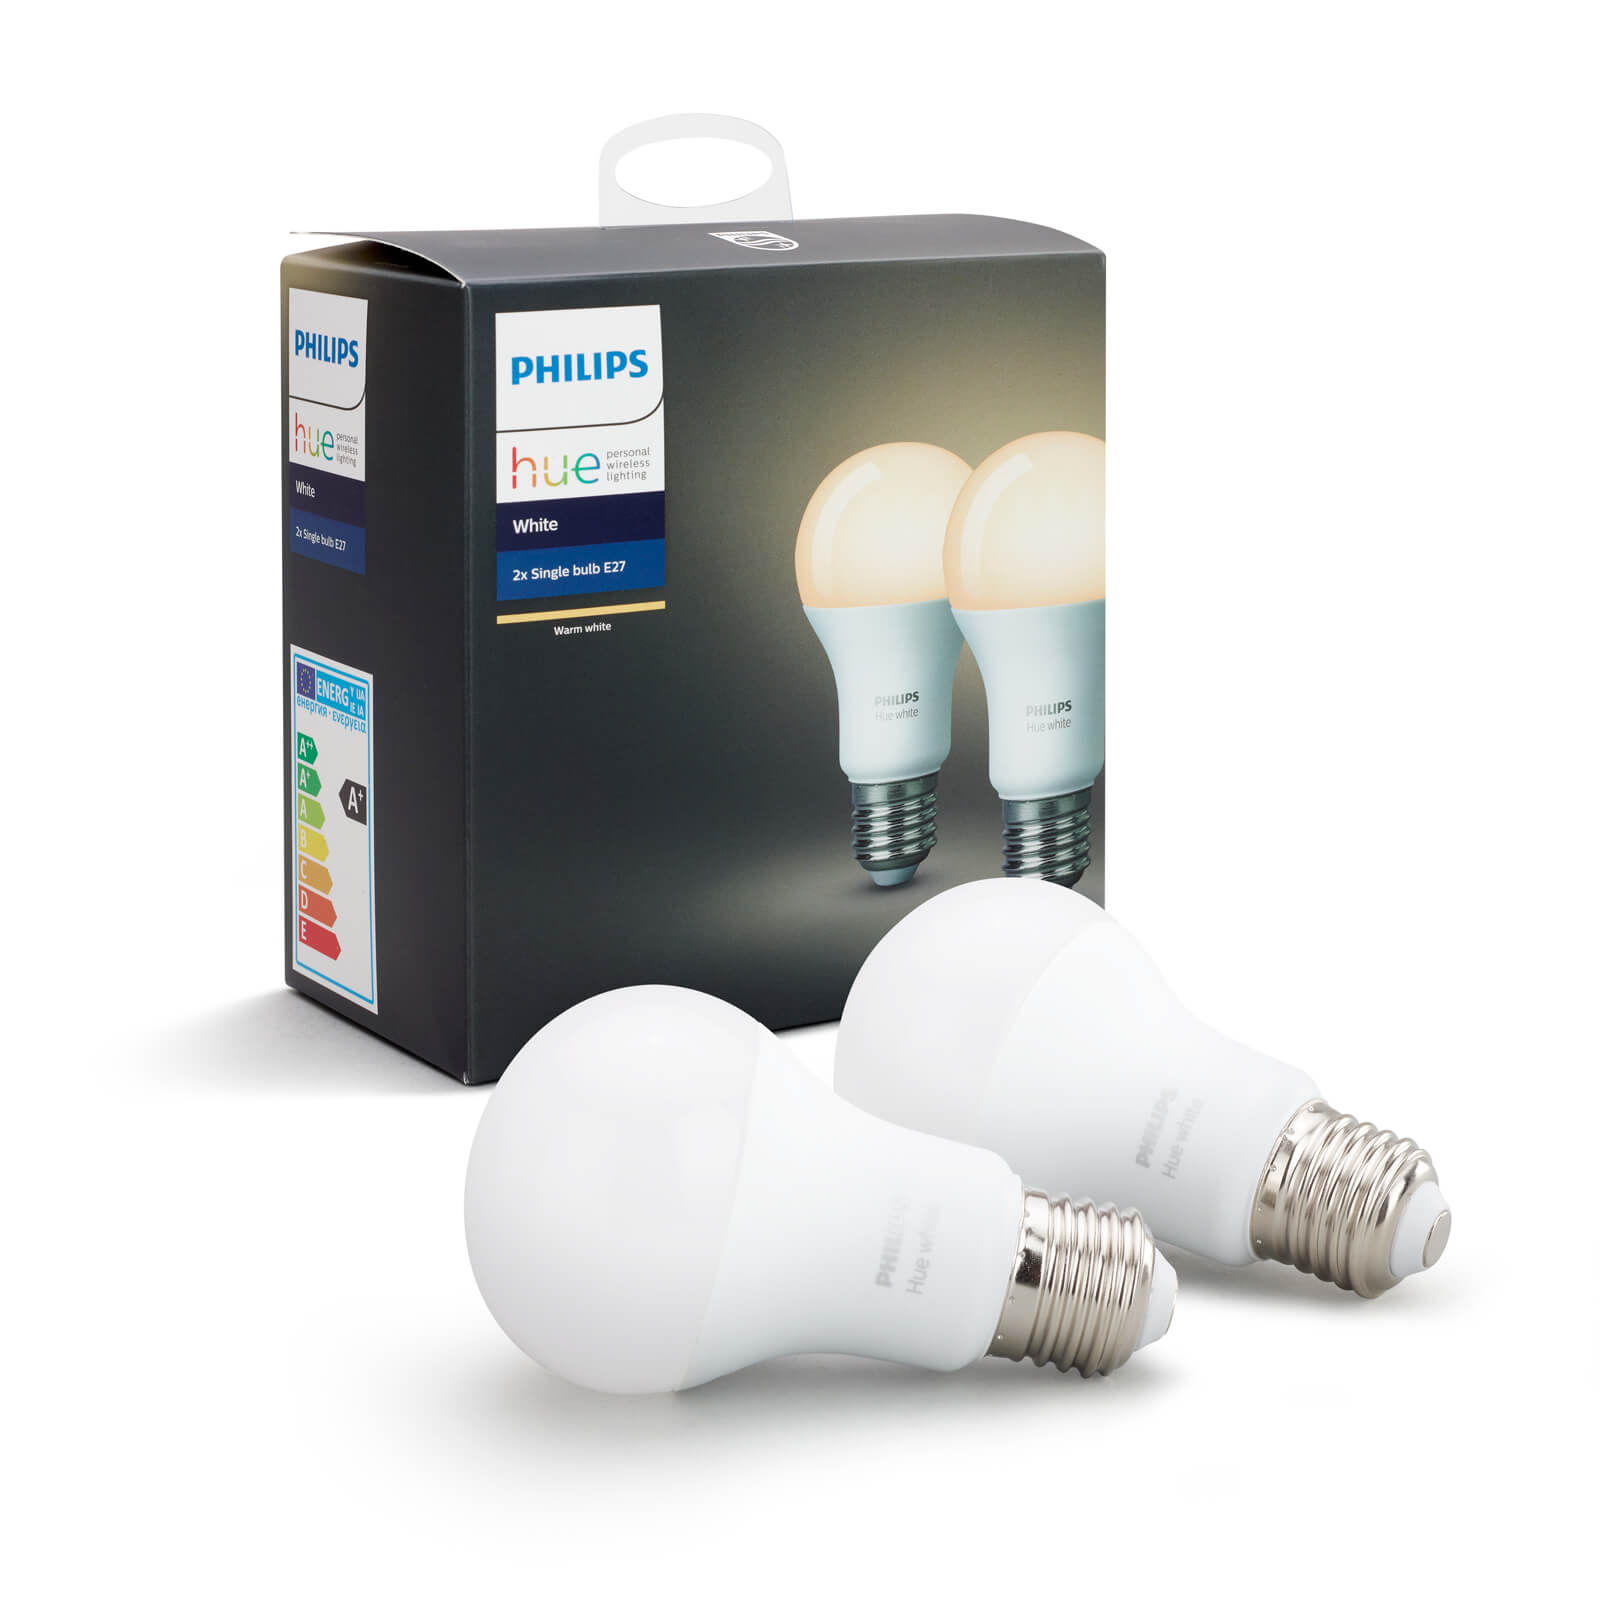 philips hue white e27 duo pack. Black Bedroom Furniture Sets. Home Design Ideas